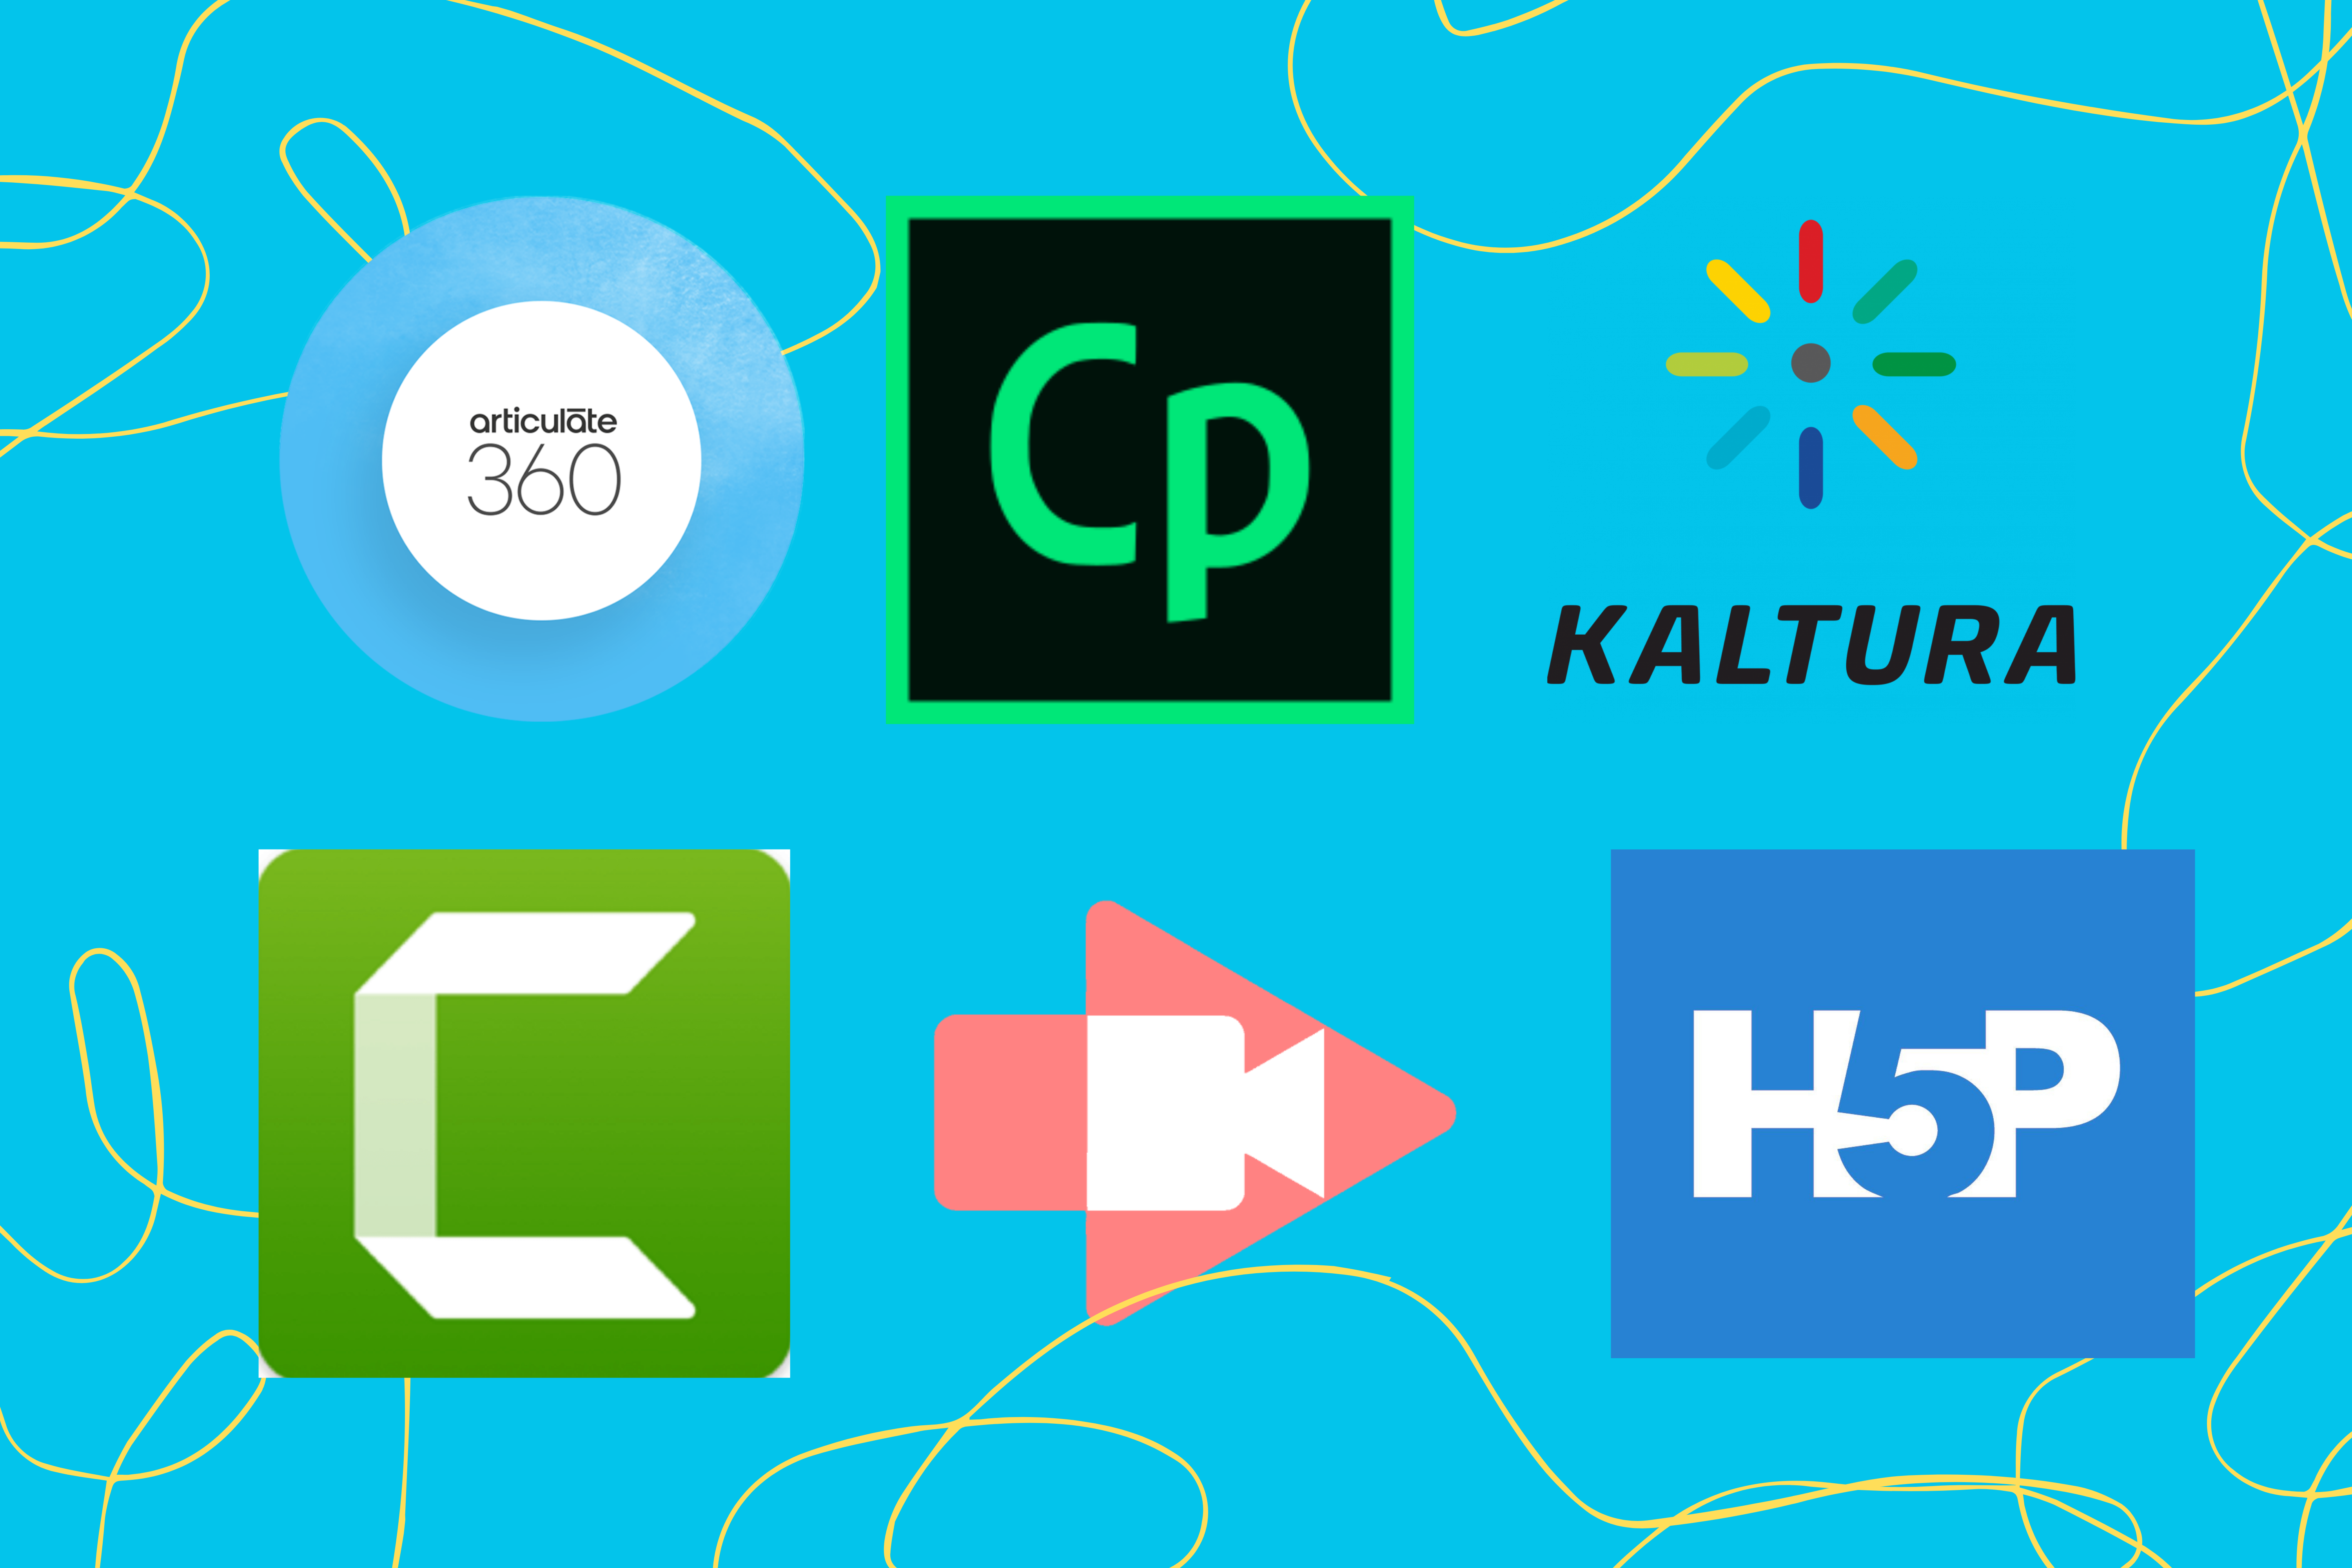 Slide showing the logos of six companies: Articulate 260, Adobe Captivate, Kaltura, Camtasia, Screencastify, and H5P